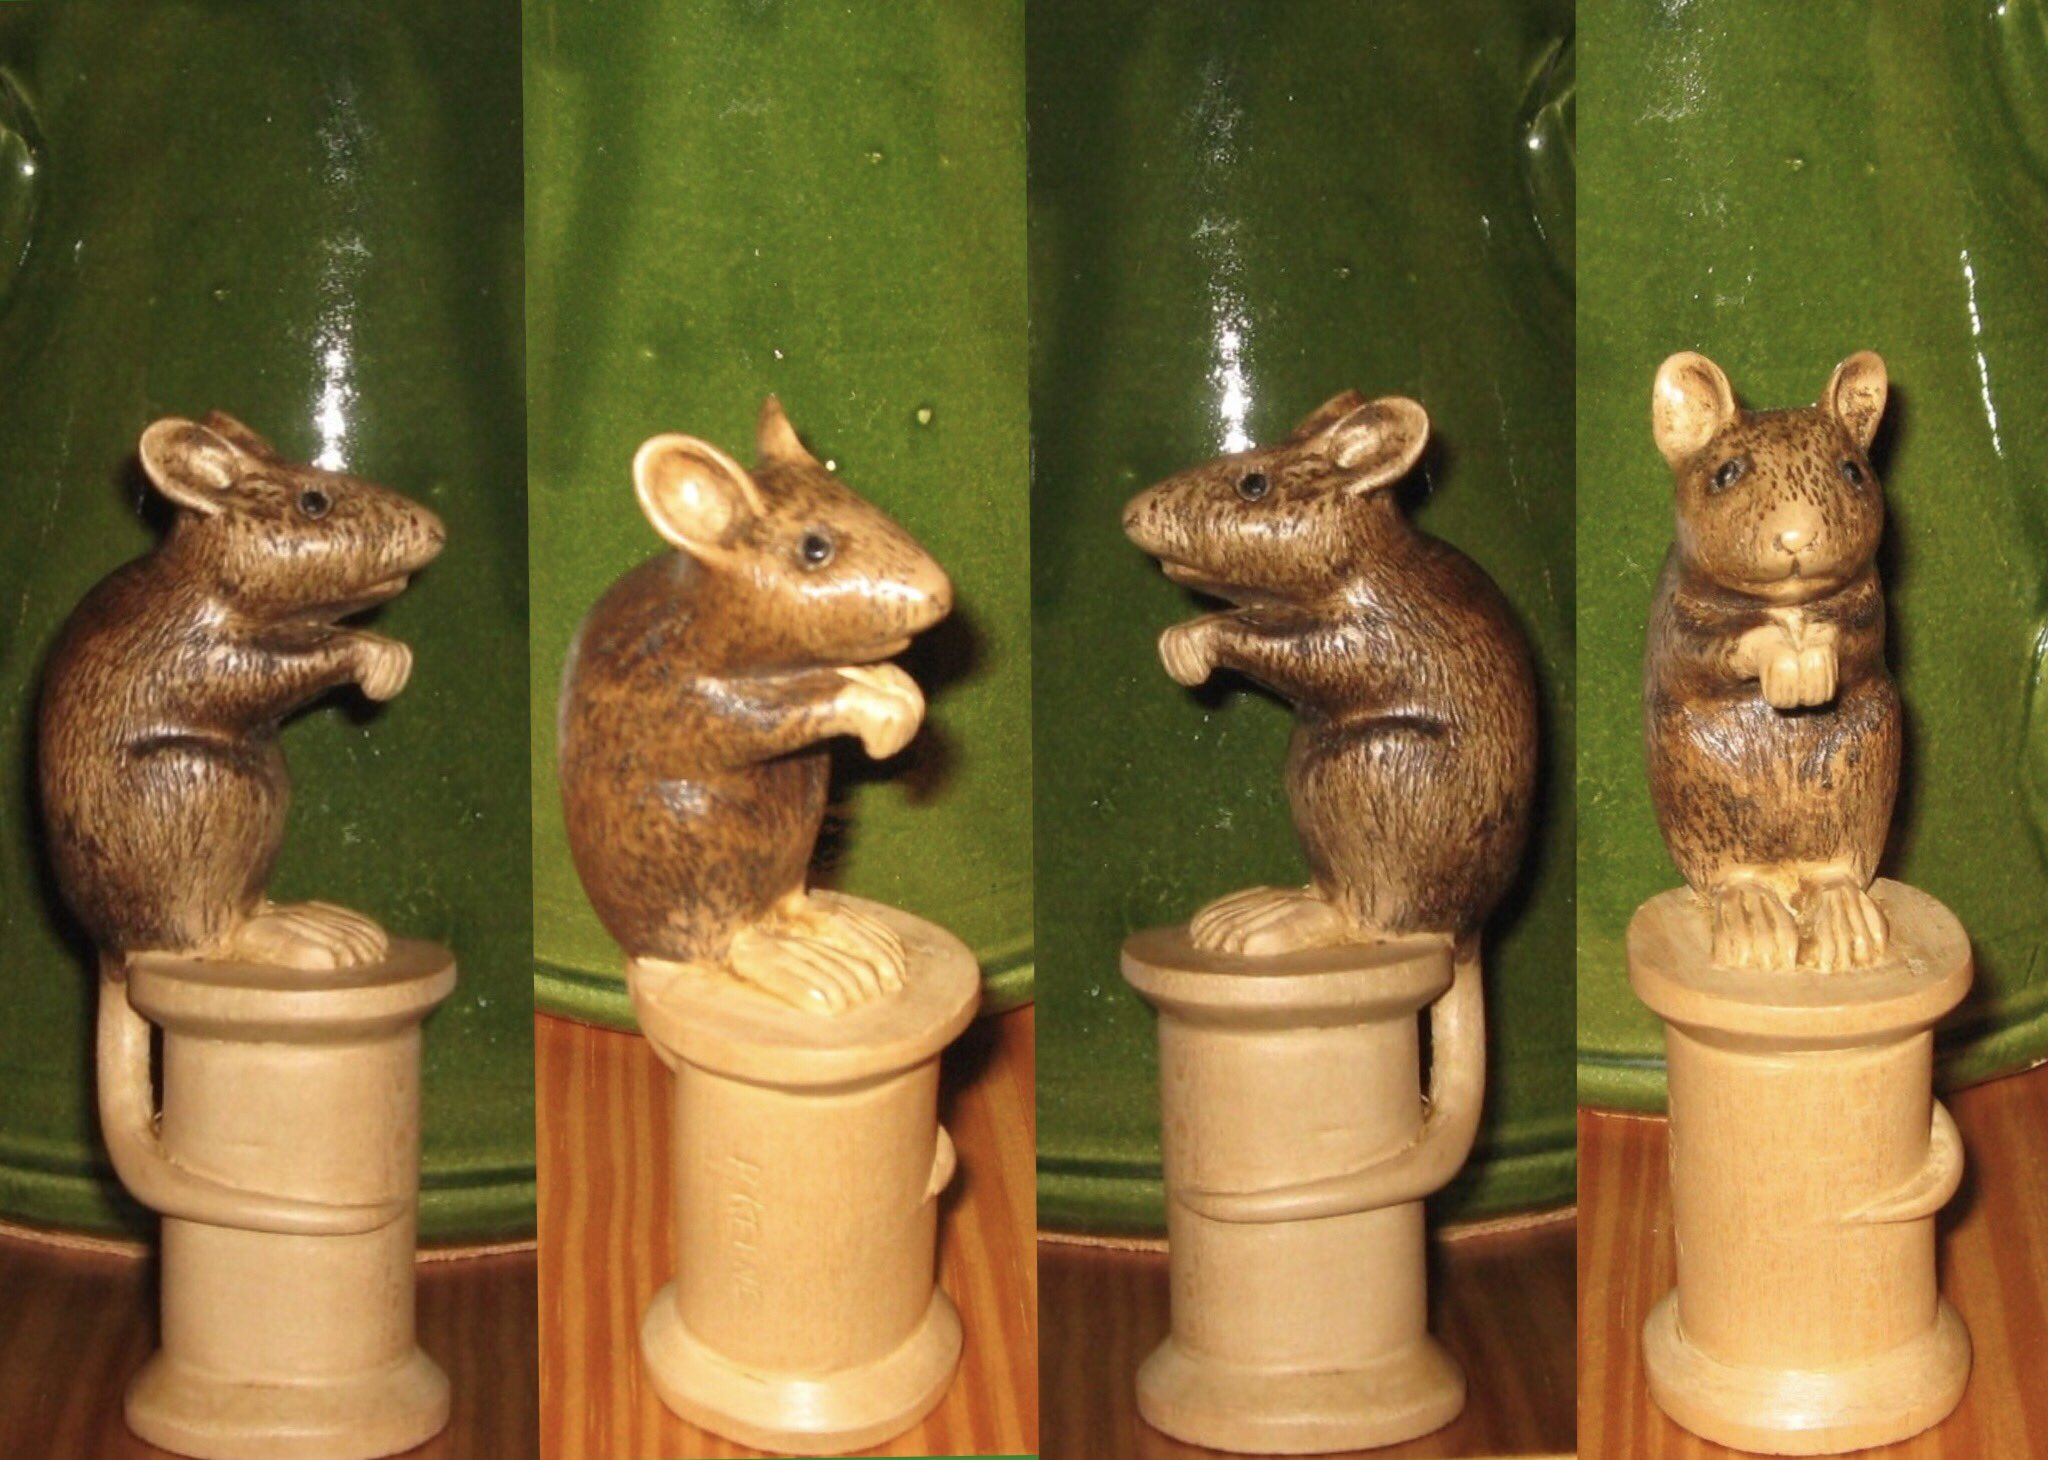 Cotton bobbin mouse moved on quite a while ago https://t.co/LWayc0AnM2